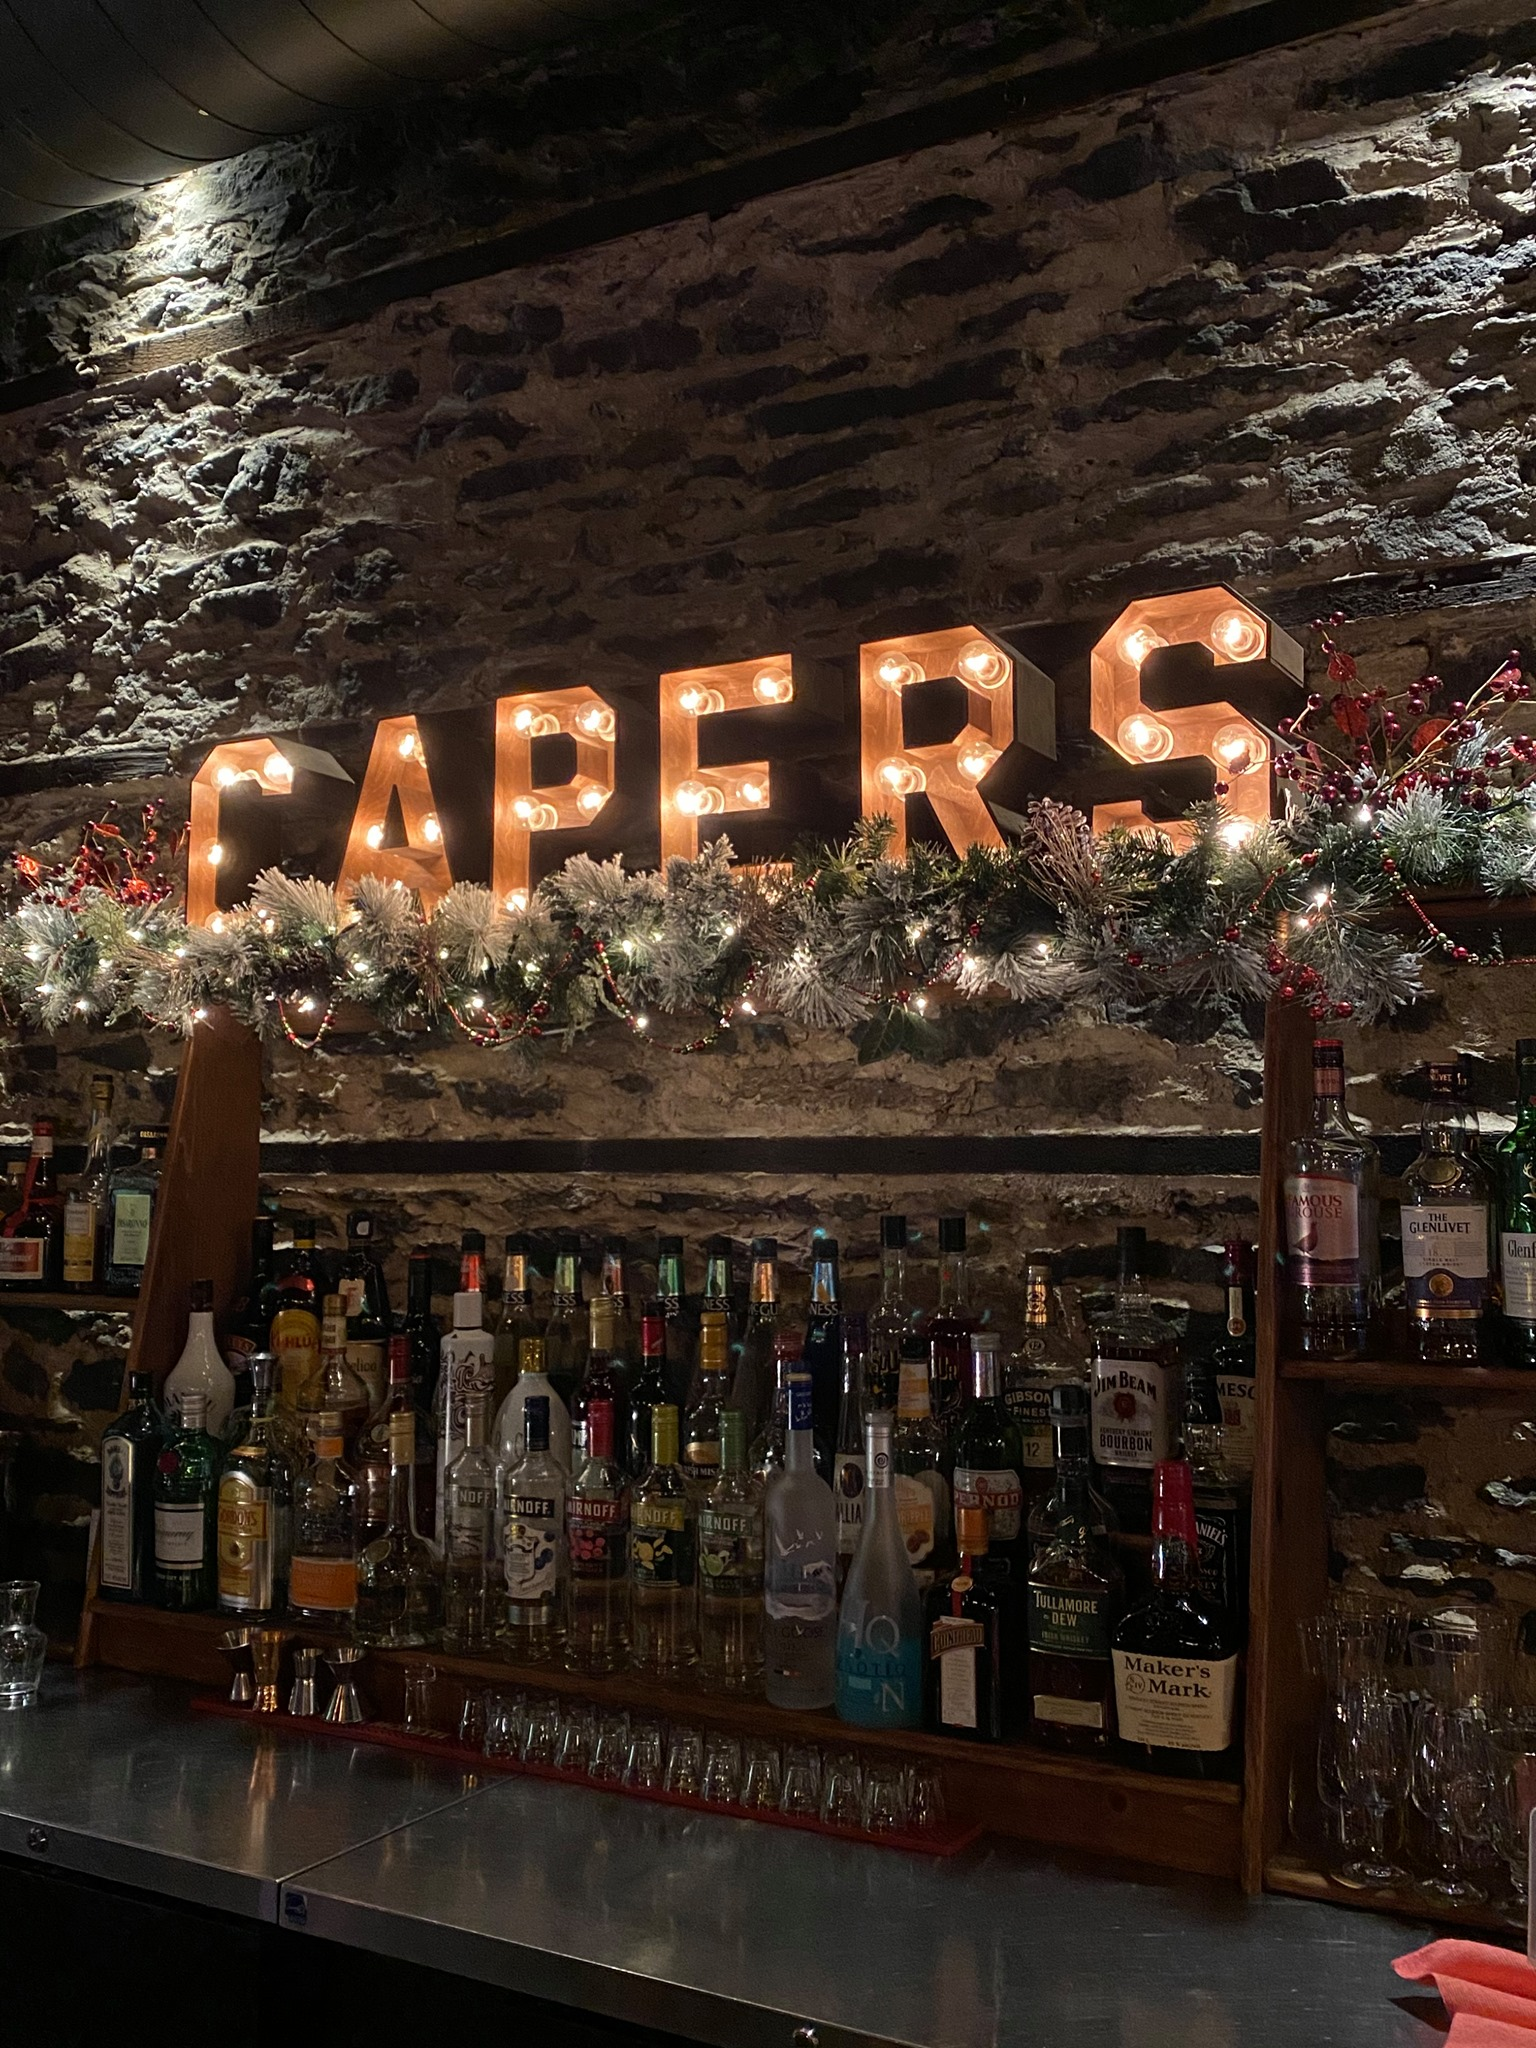 Capers sign